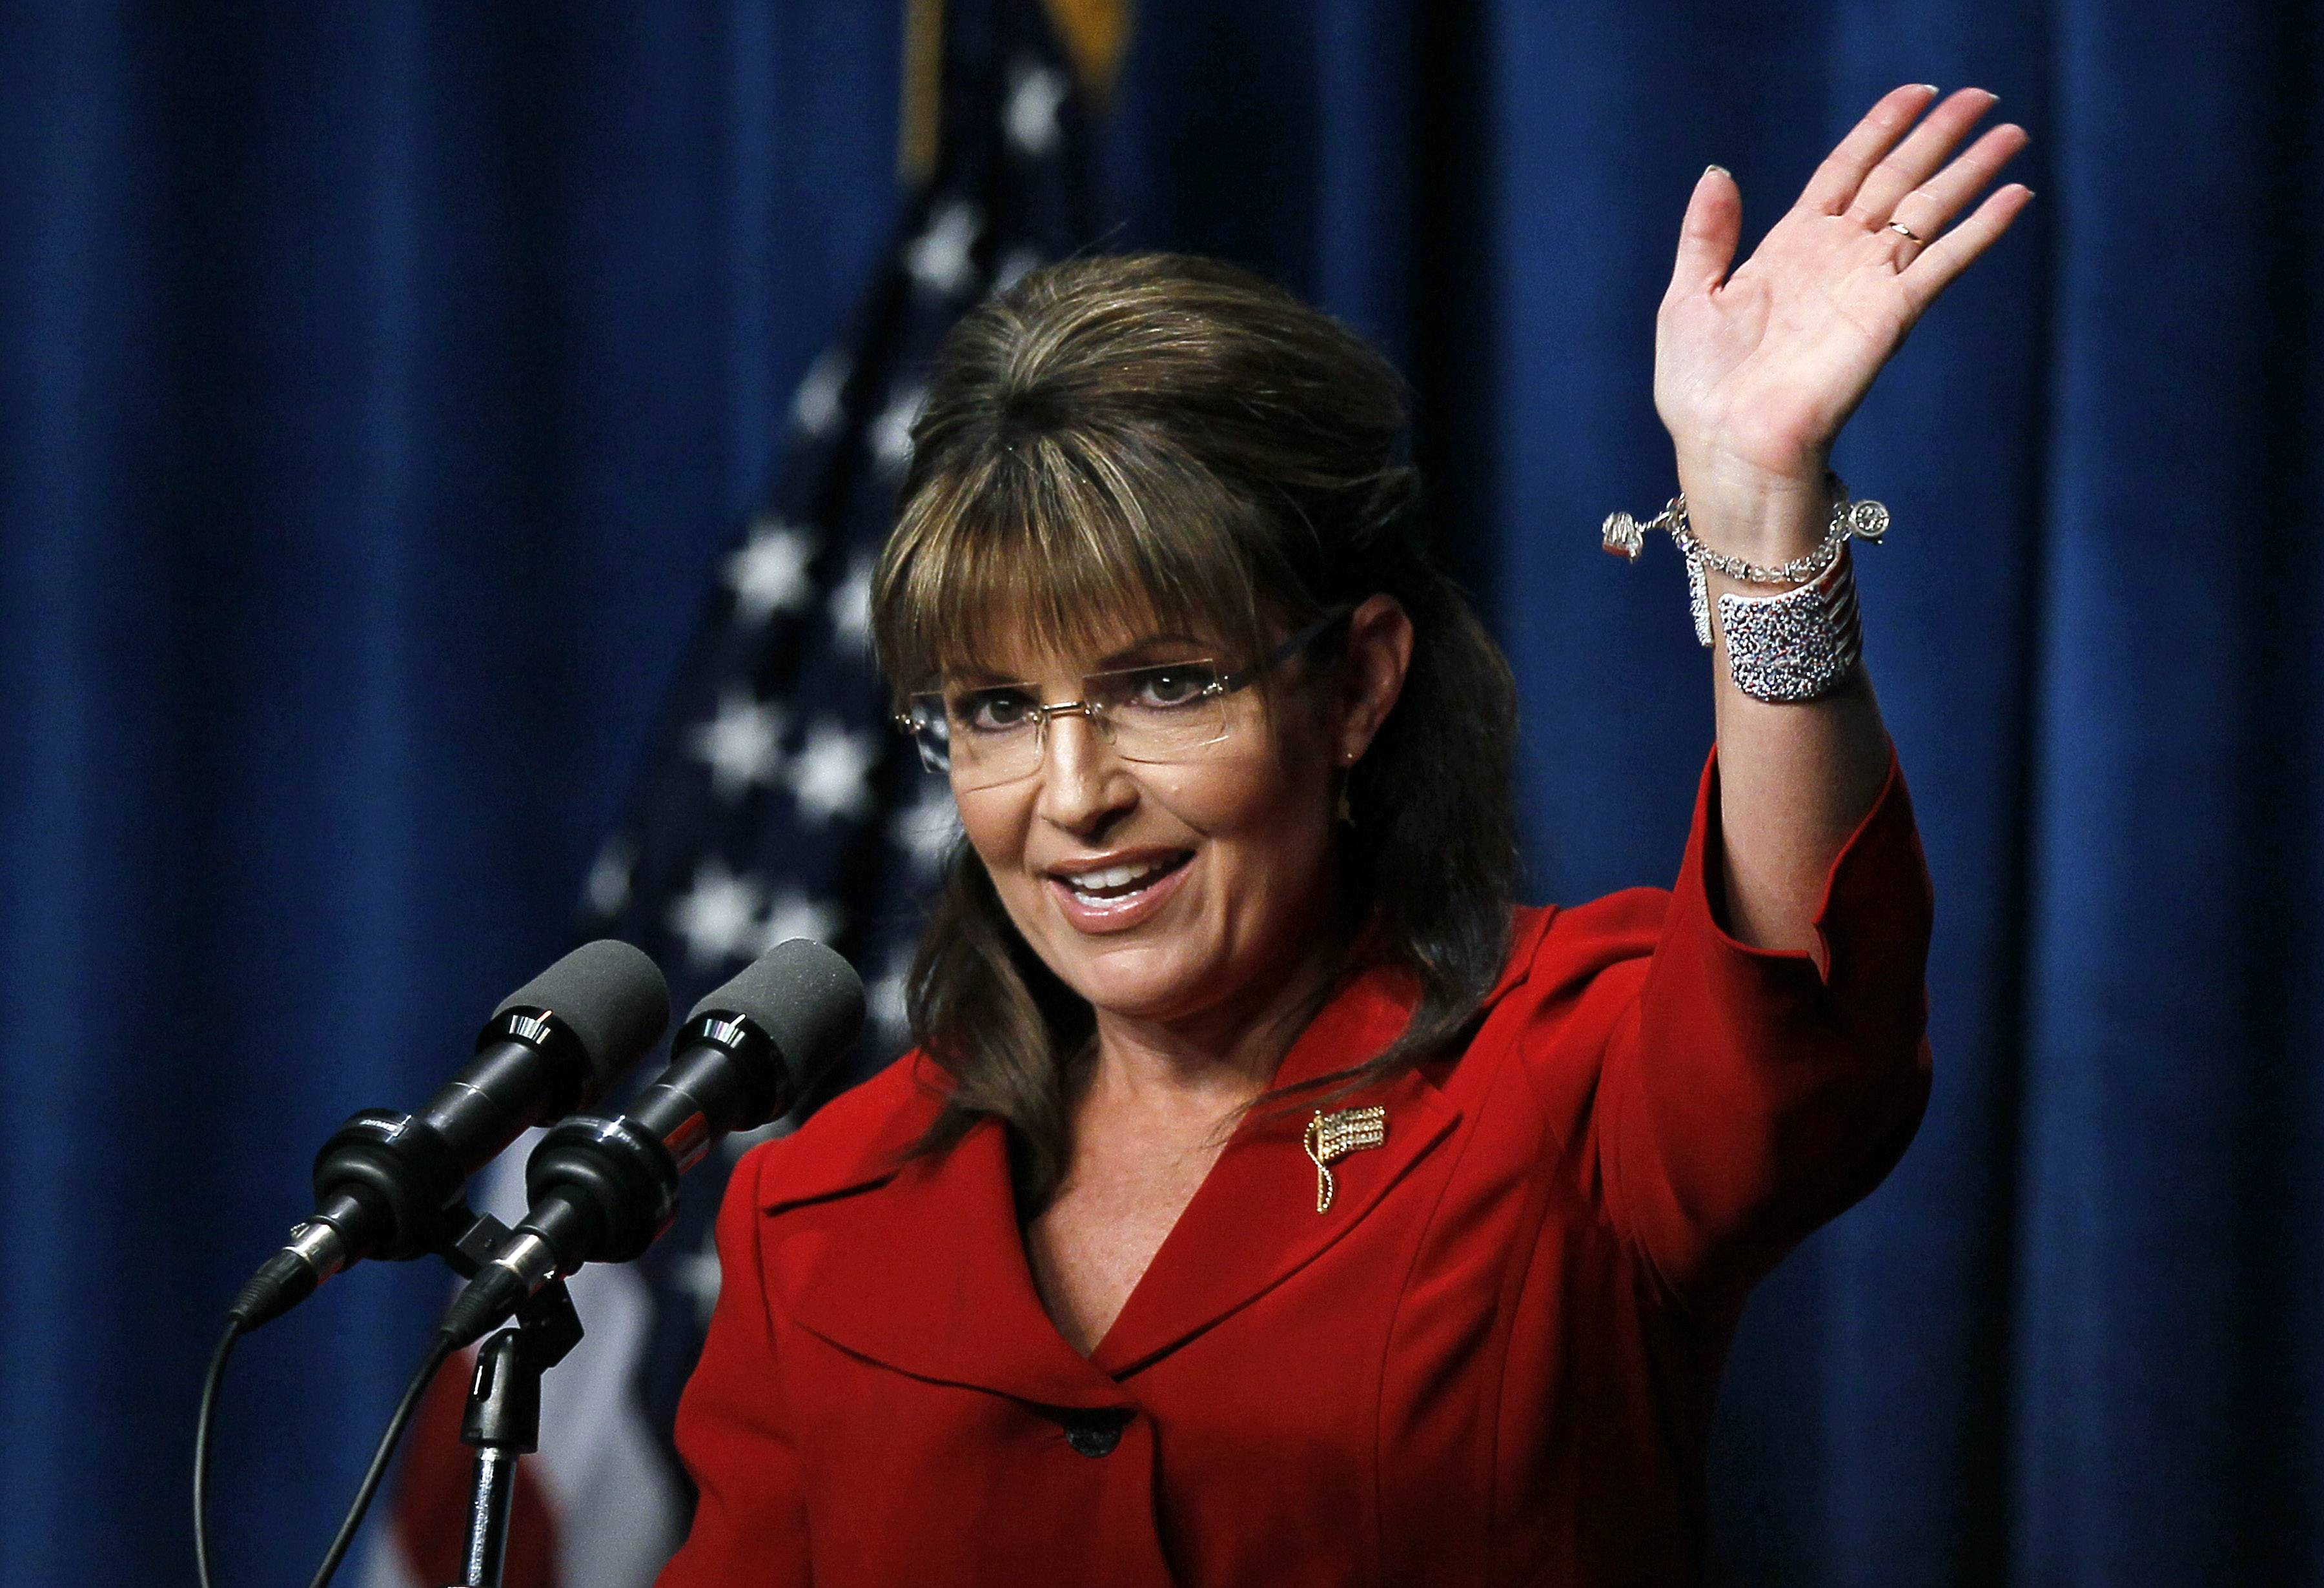 Sarah Palin won't be waving to her fans on Dec. 1 in Naperville — s